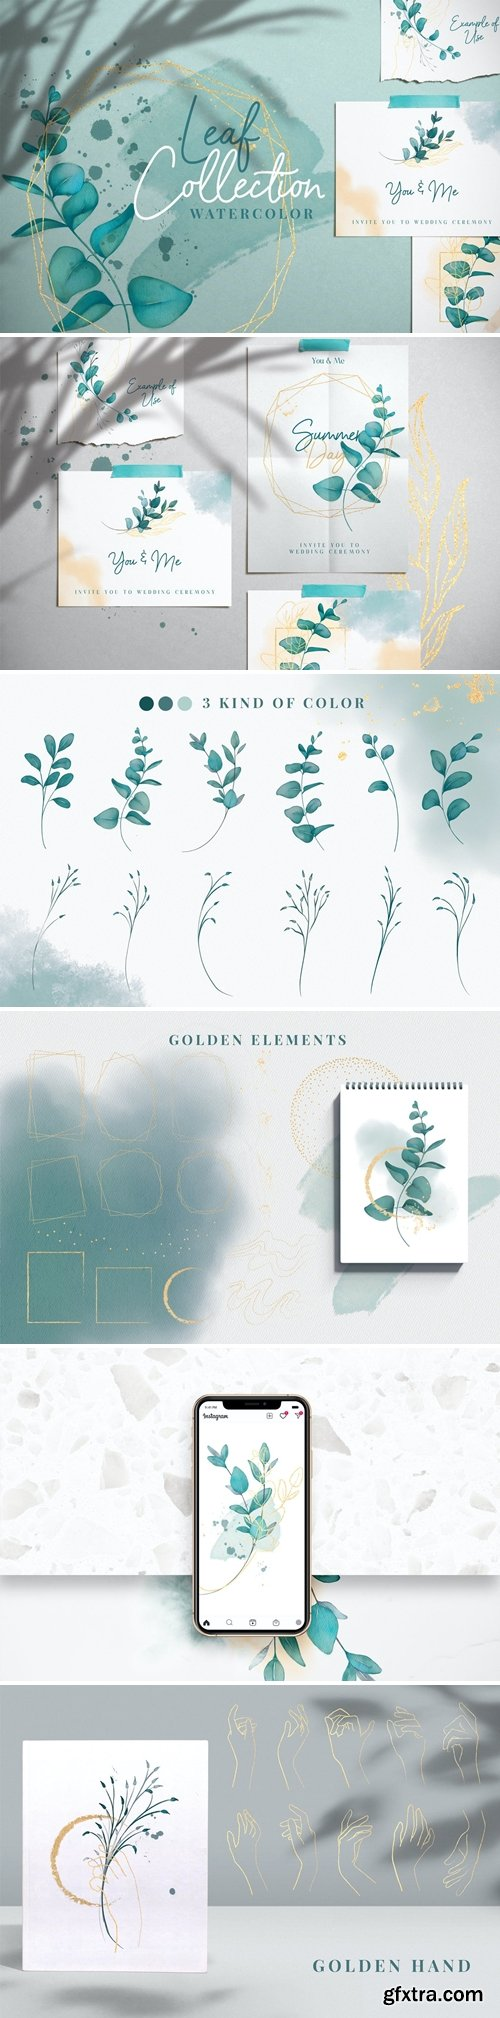 Leaf & Watercolor collection